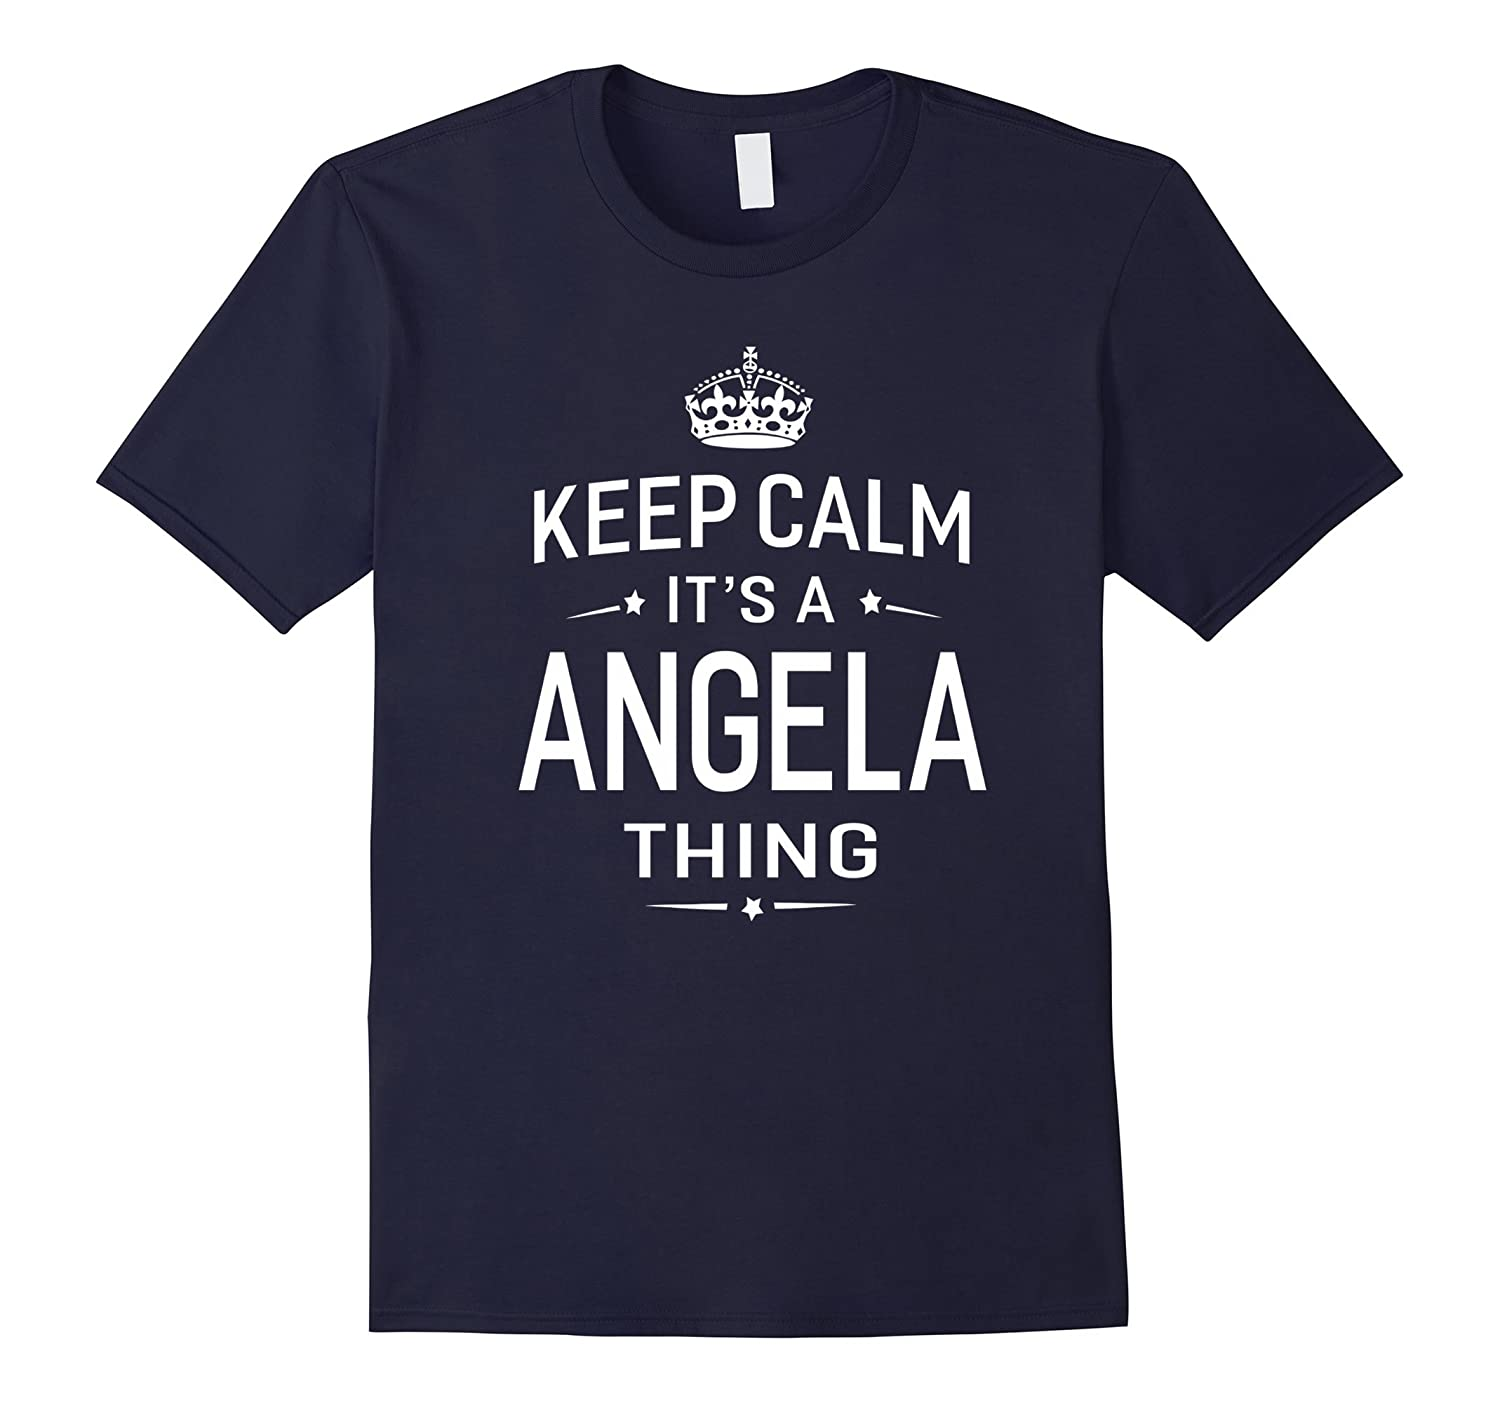 Keep Calm Its Angela Thing Funny Gifts Name T-Shirt Women-TJ